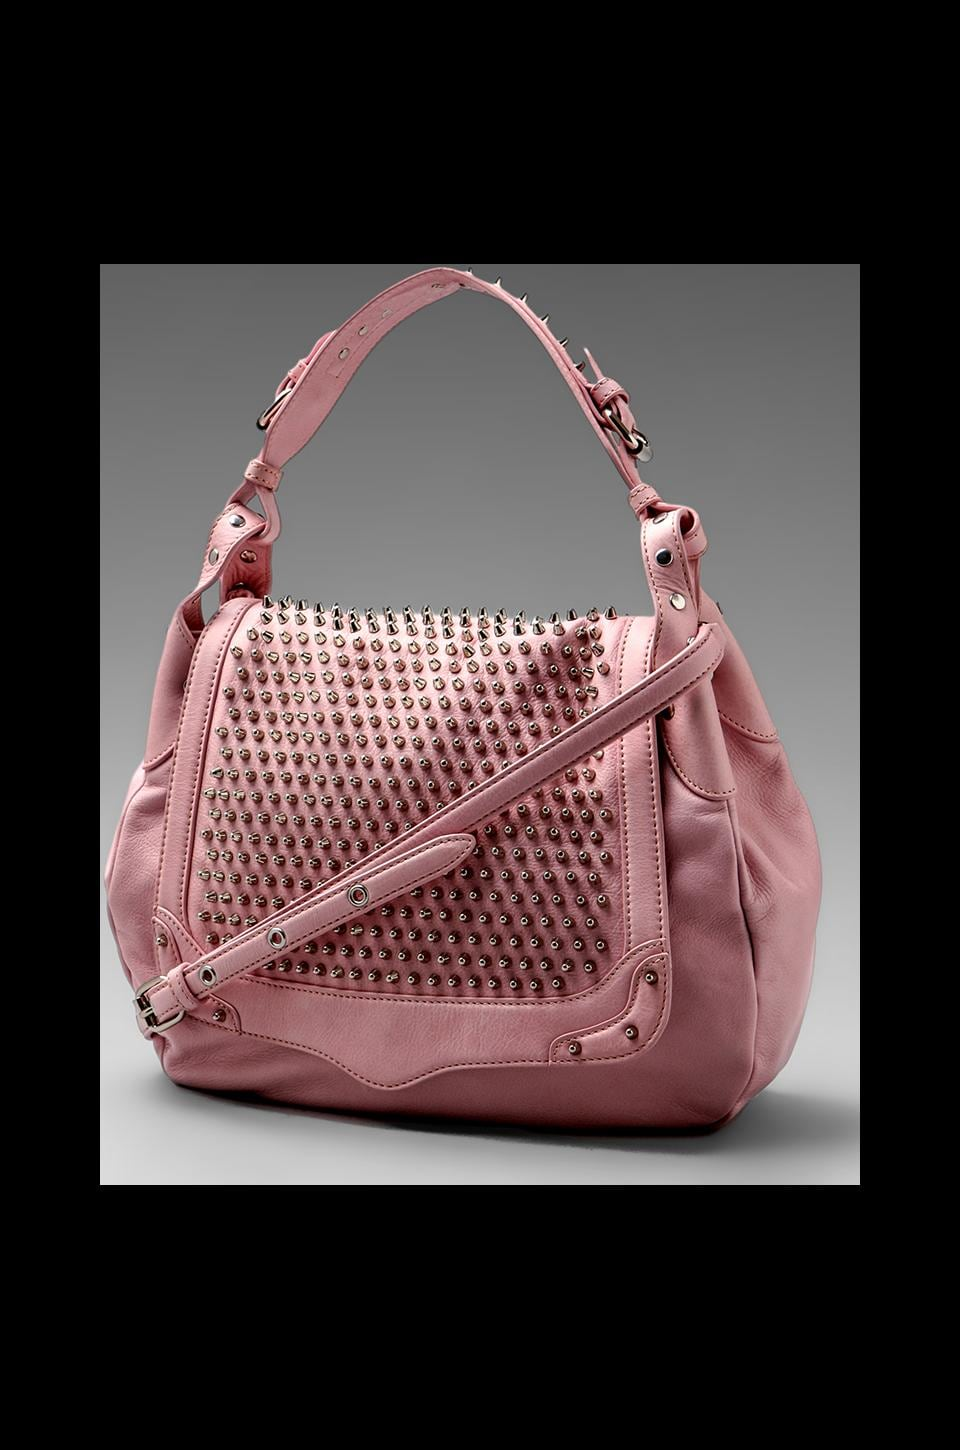 Rebecca Minkoff Studded Moonstruck in Petal Pink